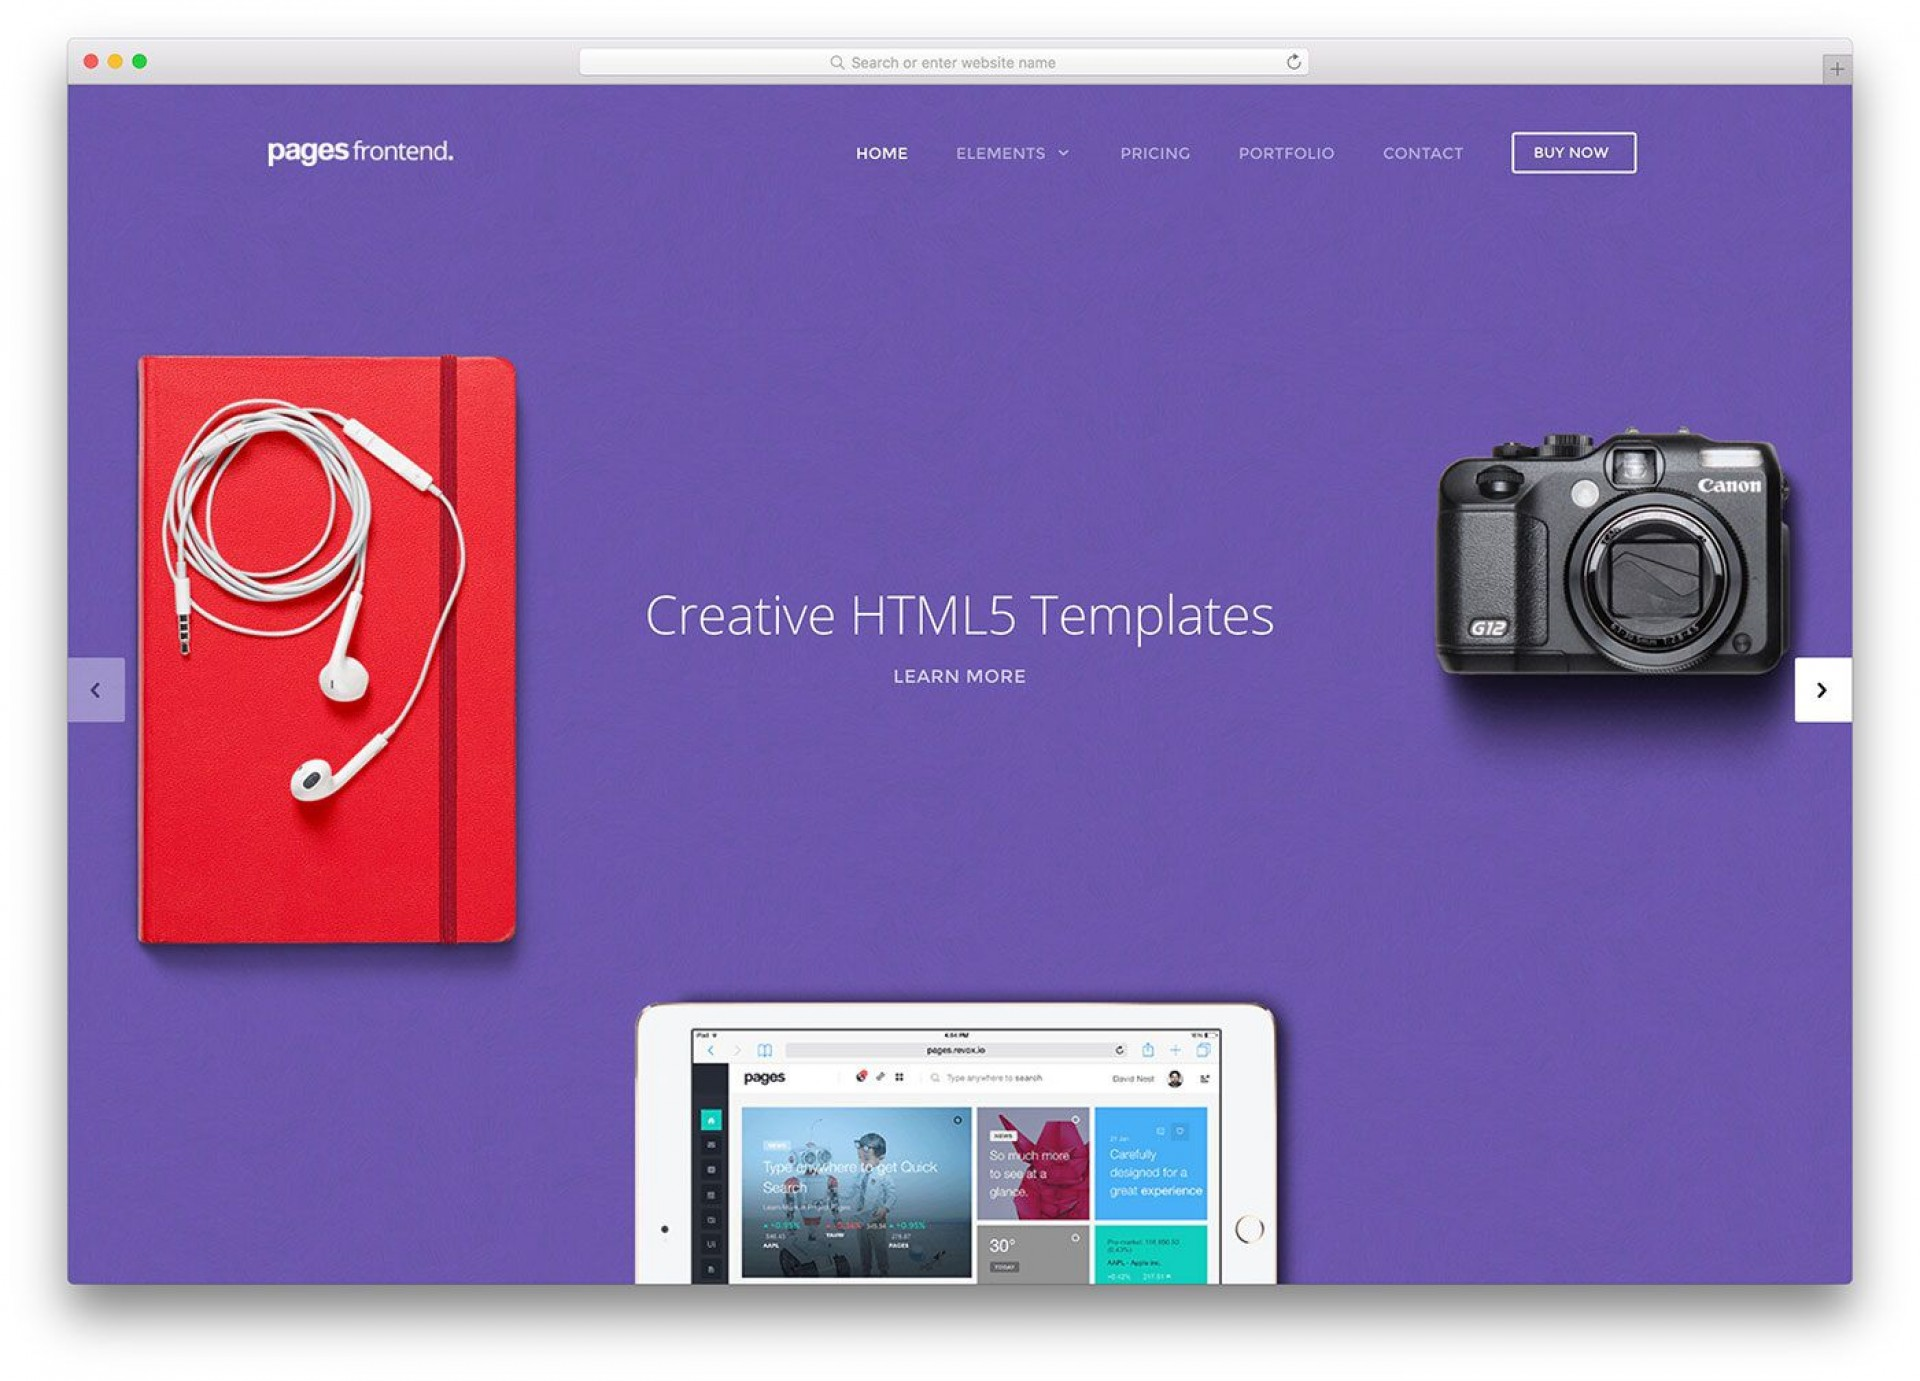 003 Magnificent Download Web Template Html5 Inspiration  Photography Website Free Logistic Busines1920